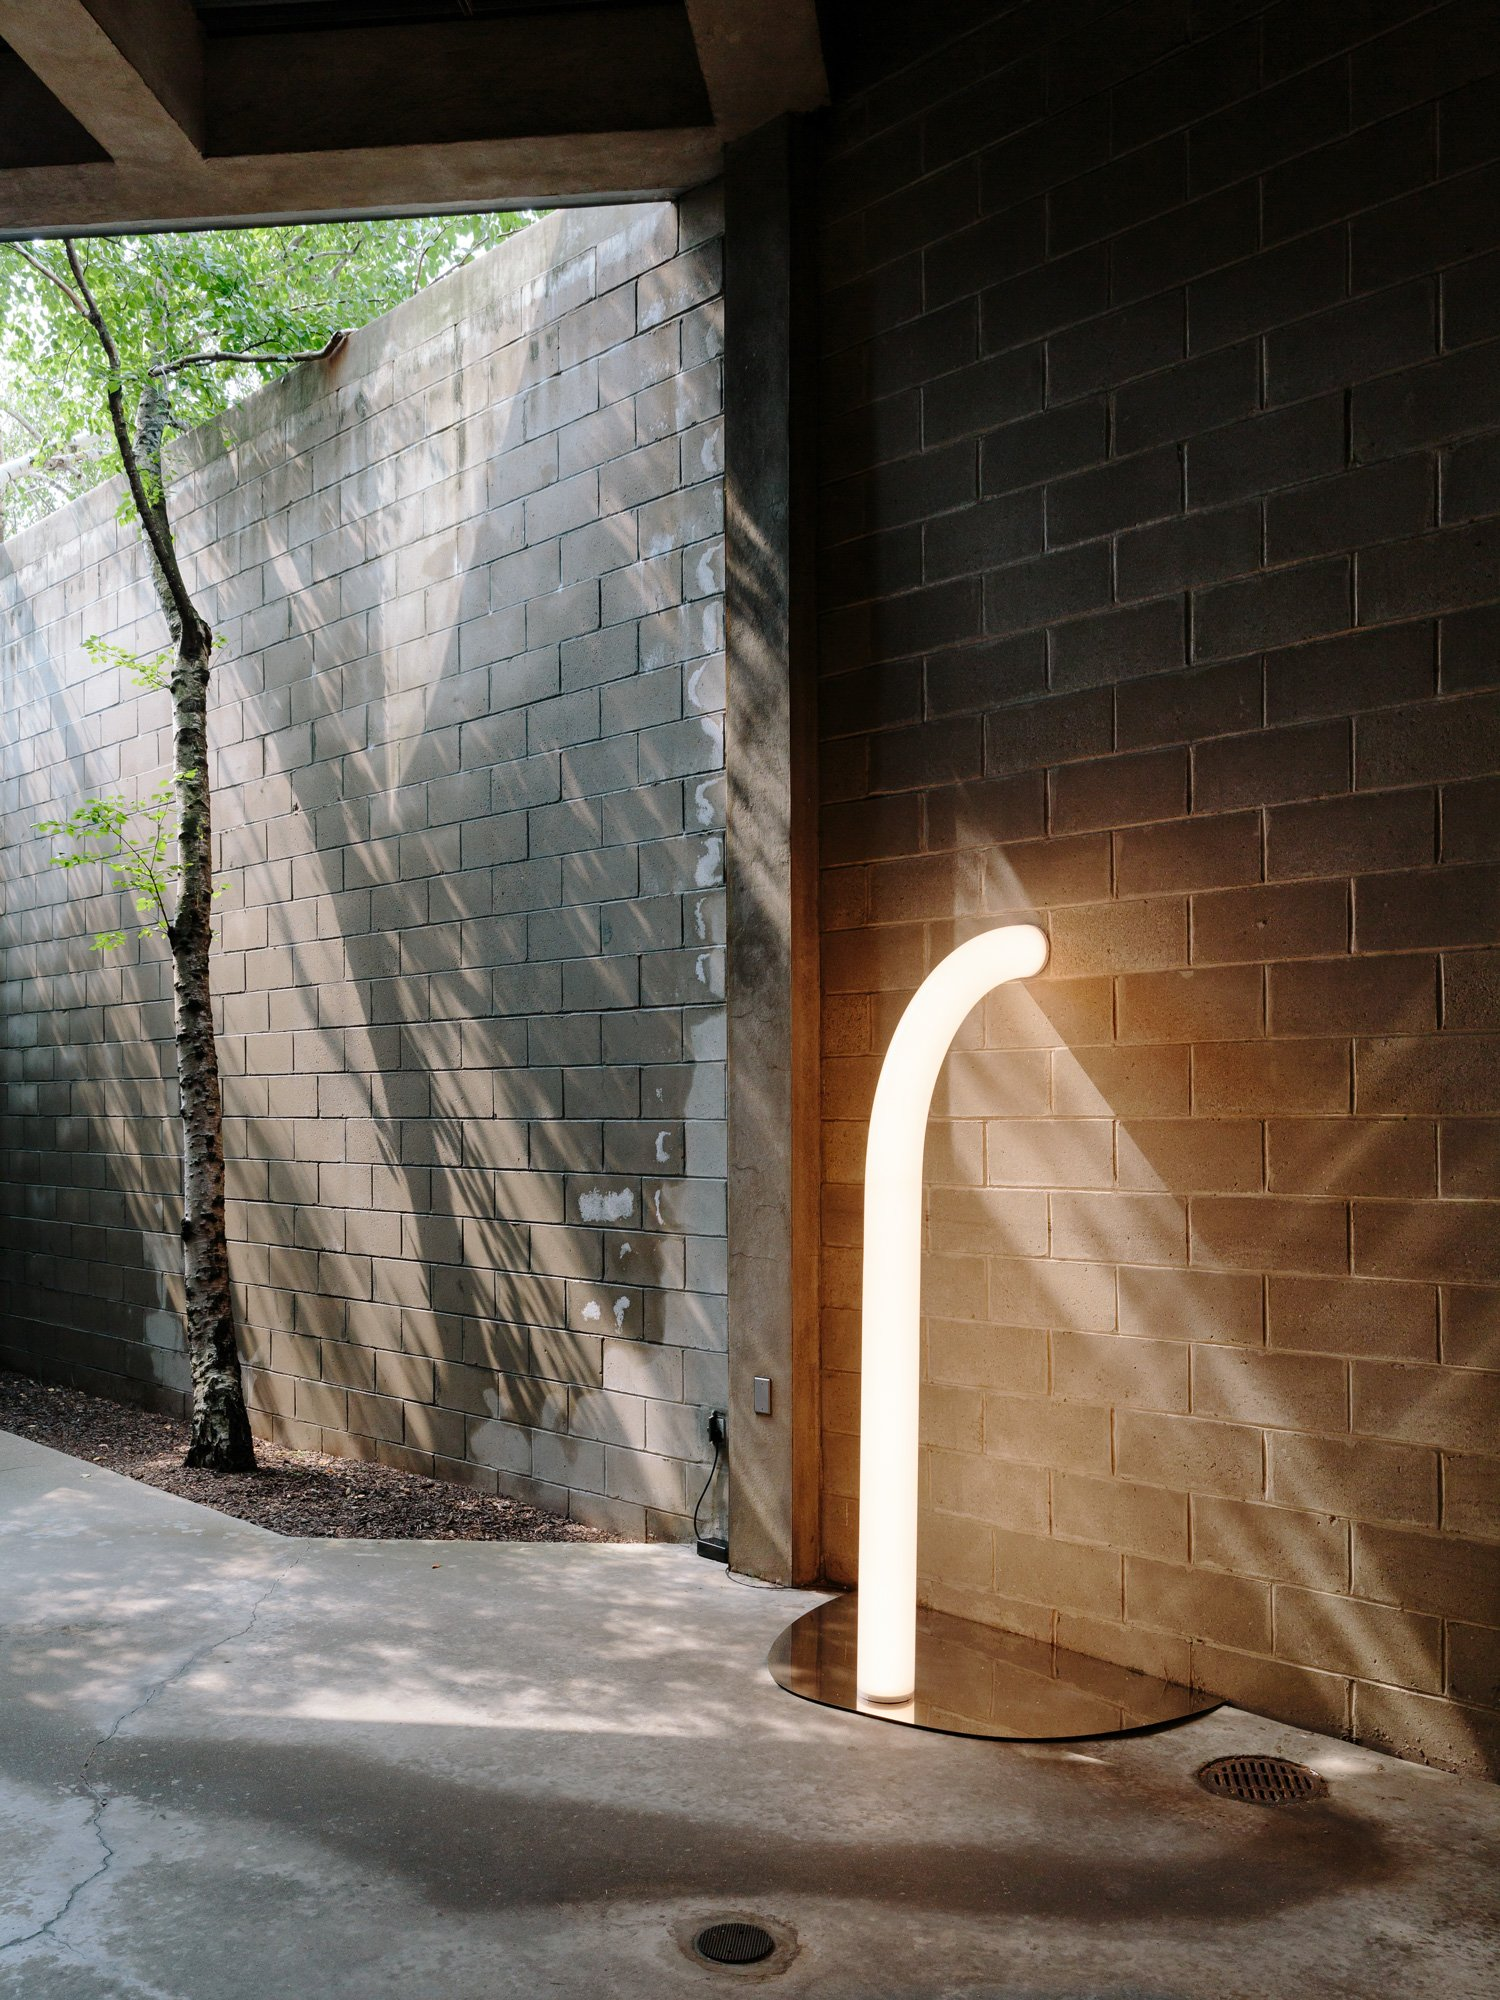 A tube light sculpture by Objects of Common Interest on a mirrored surface on the concrete floor of an outdoor gallery at the Isamu Noguchi Museum.